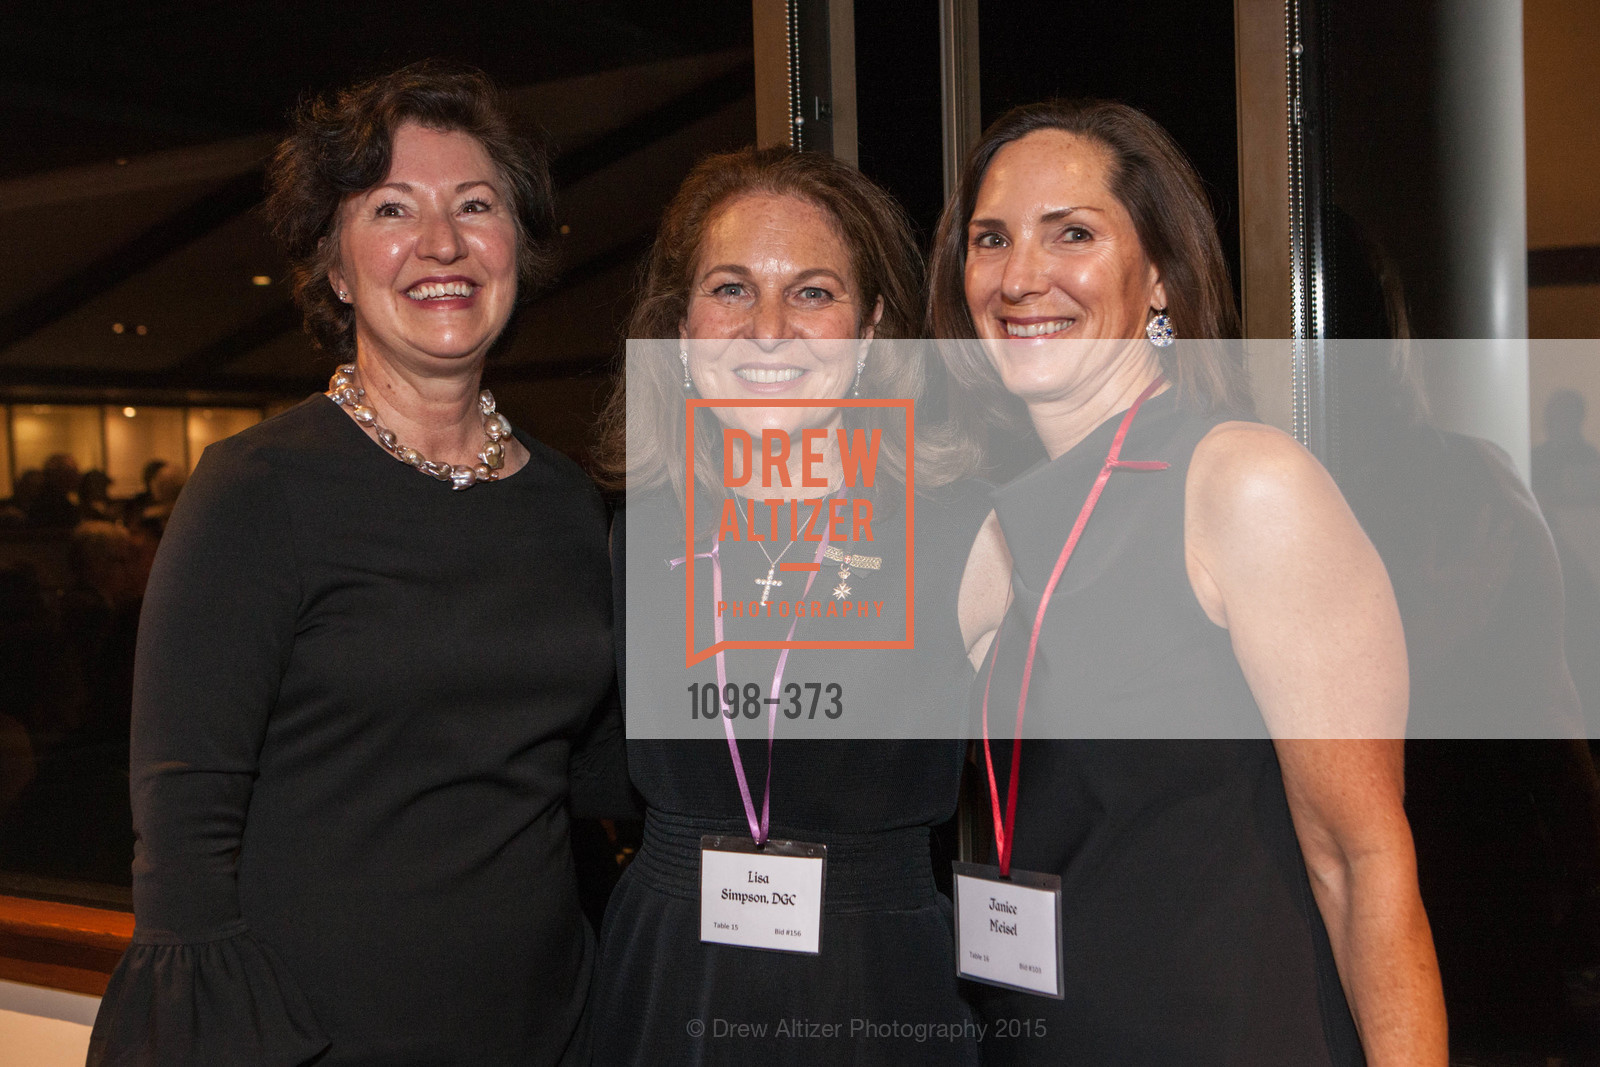 Lisa Simpson, Janice Meisel, Sovereign Order of Malta Presents: A Knight for Champions, 7th Annual Silver Chalice Awards Dinner, St. Francis Yacht Club. 99 Yacht Rd, October 13th, 2015,Drew Altizer, Drew Altizer Photography, full-service agency, private events, San Francisco photographer, photographer california